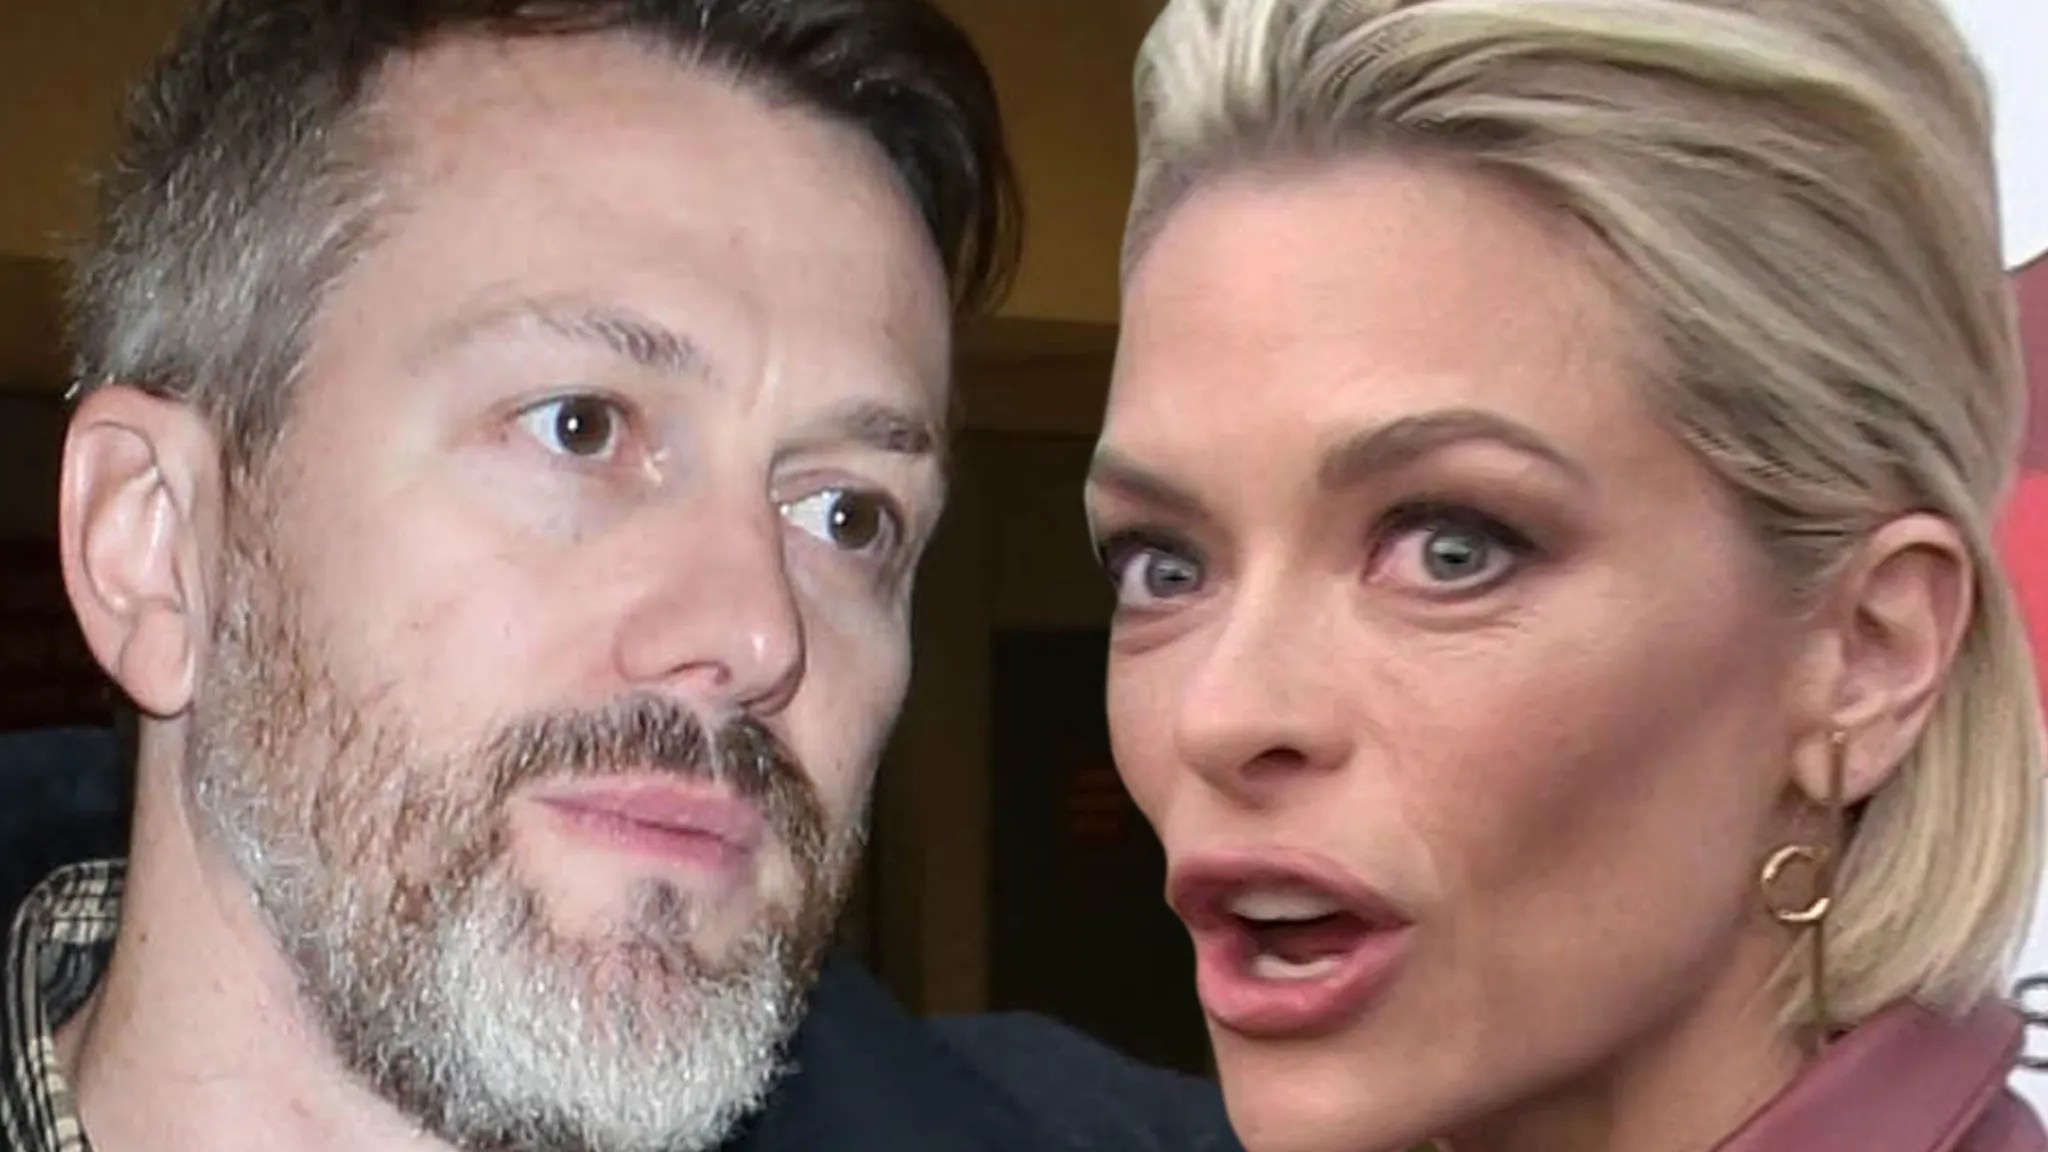 Jaime King and Estranged Husband Clash Over Child Custody, He Claims She's an Addict